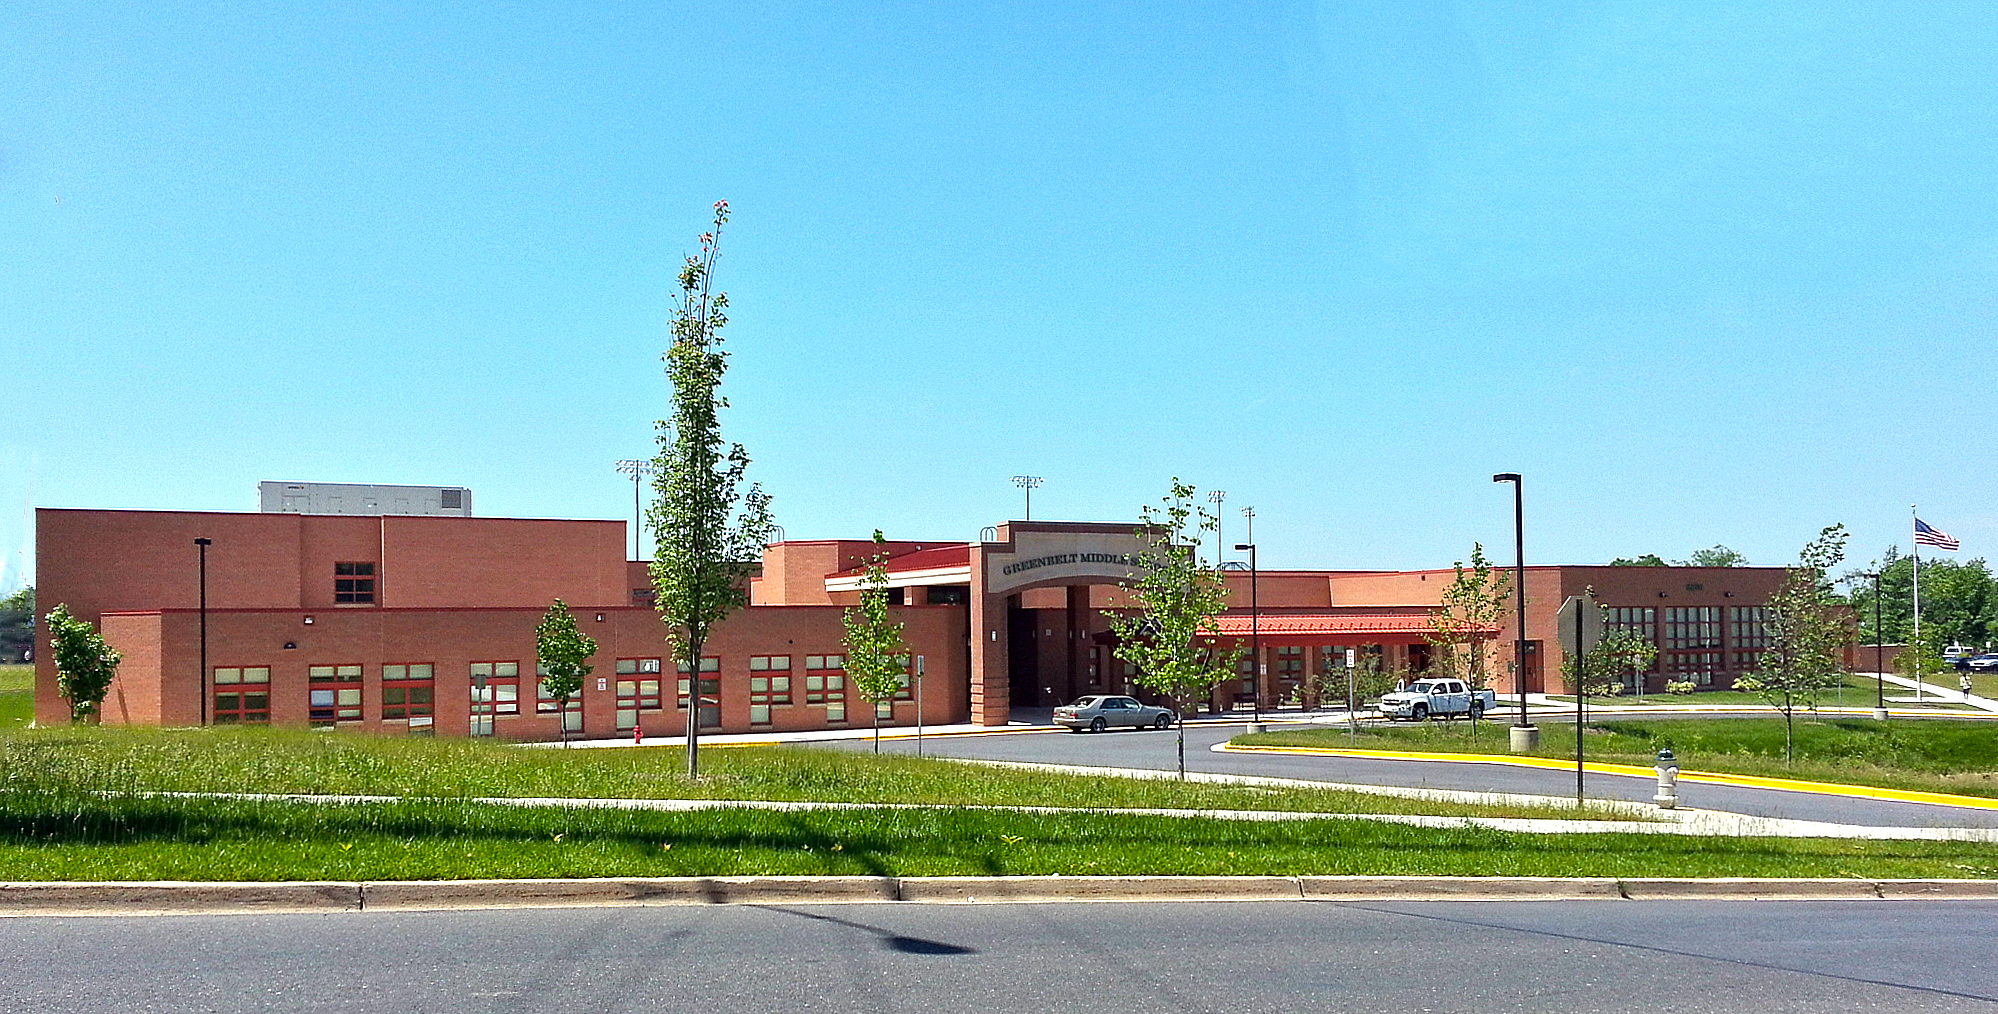 Prince George's County Greenbelt Middle School